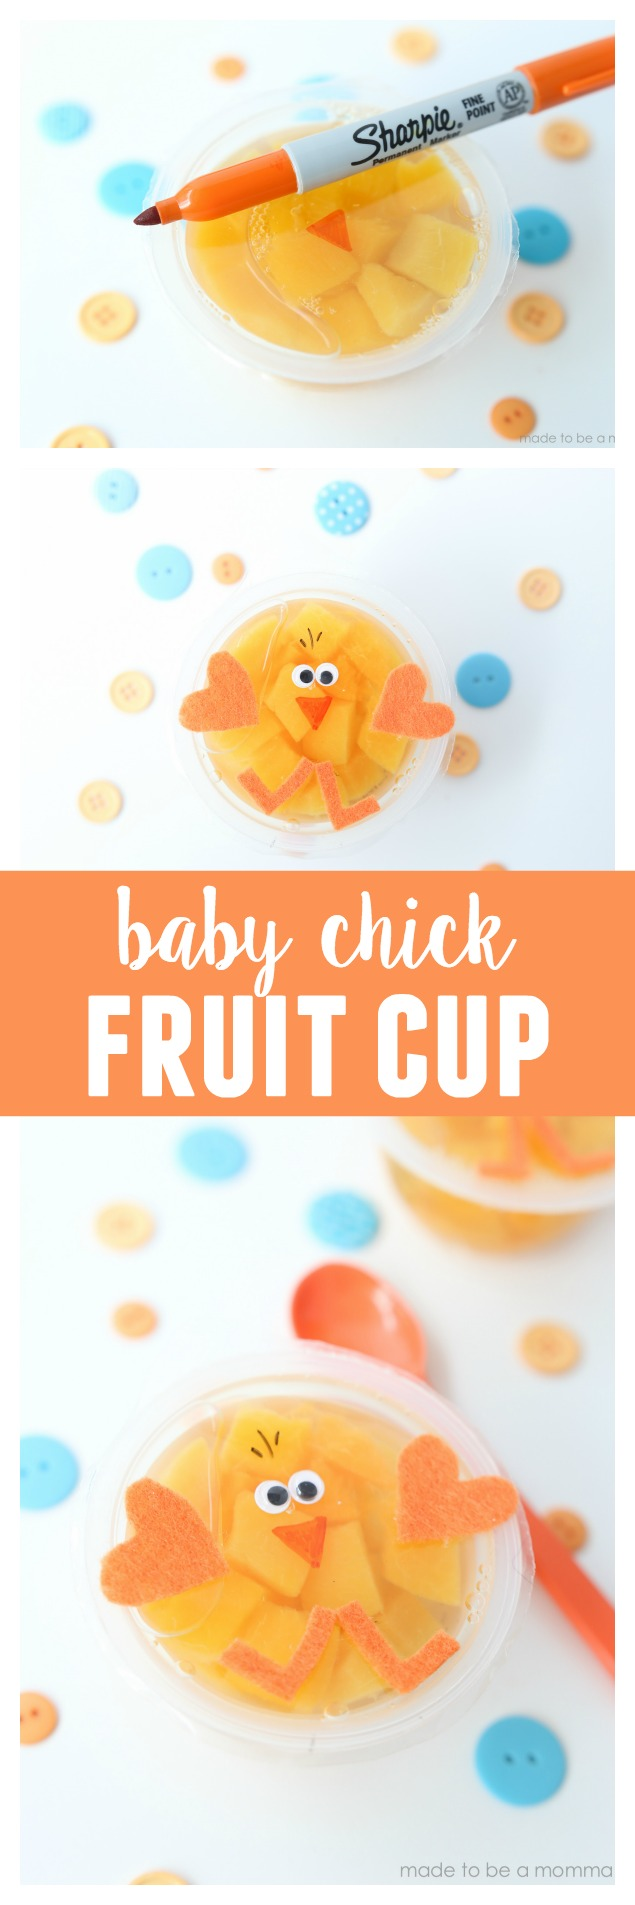 Baby Chick Fruit Cup: a fun spring idea for the kids to take in there lunch boxes or enjoy at home